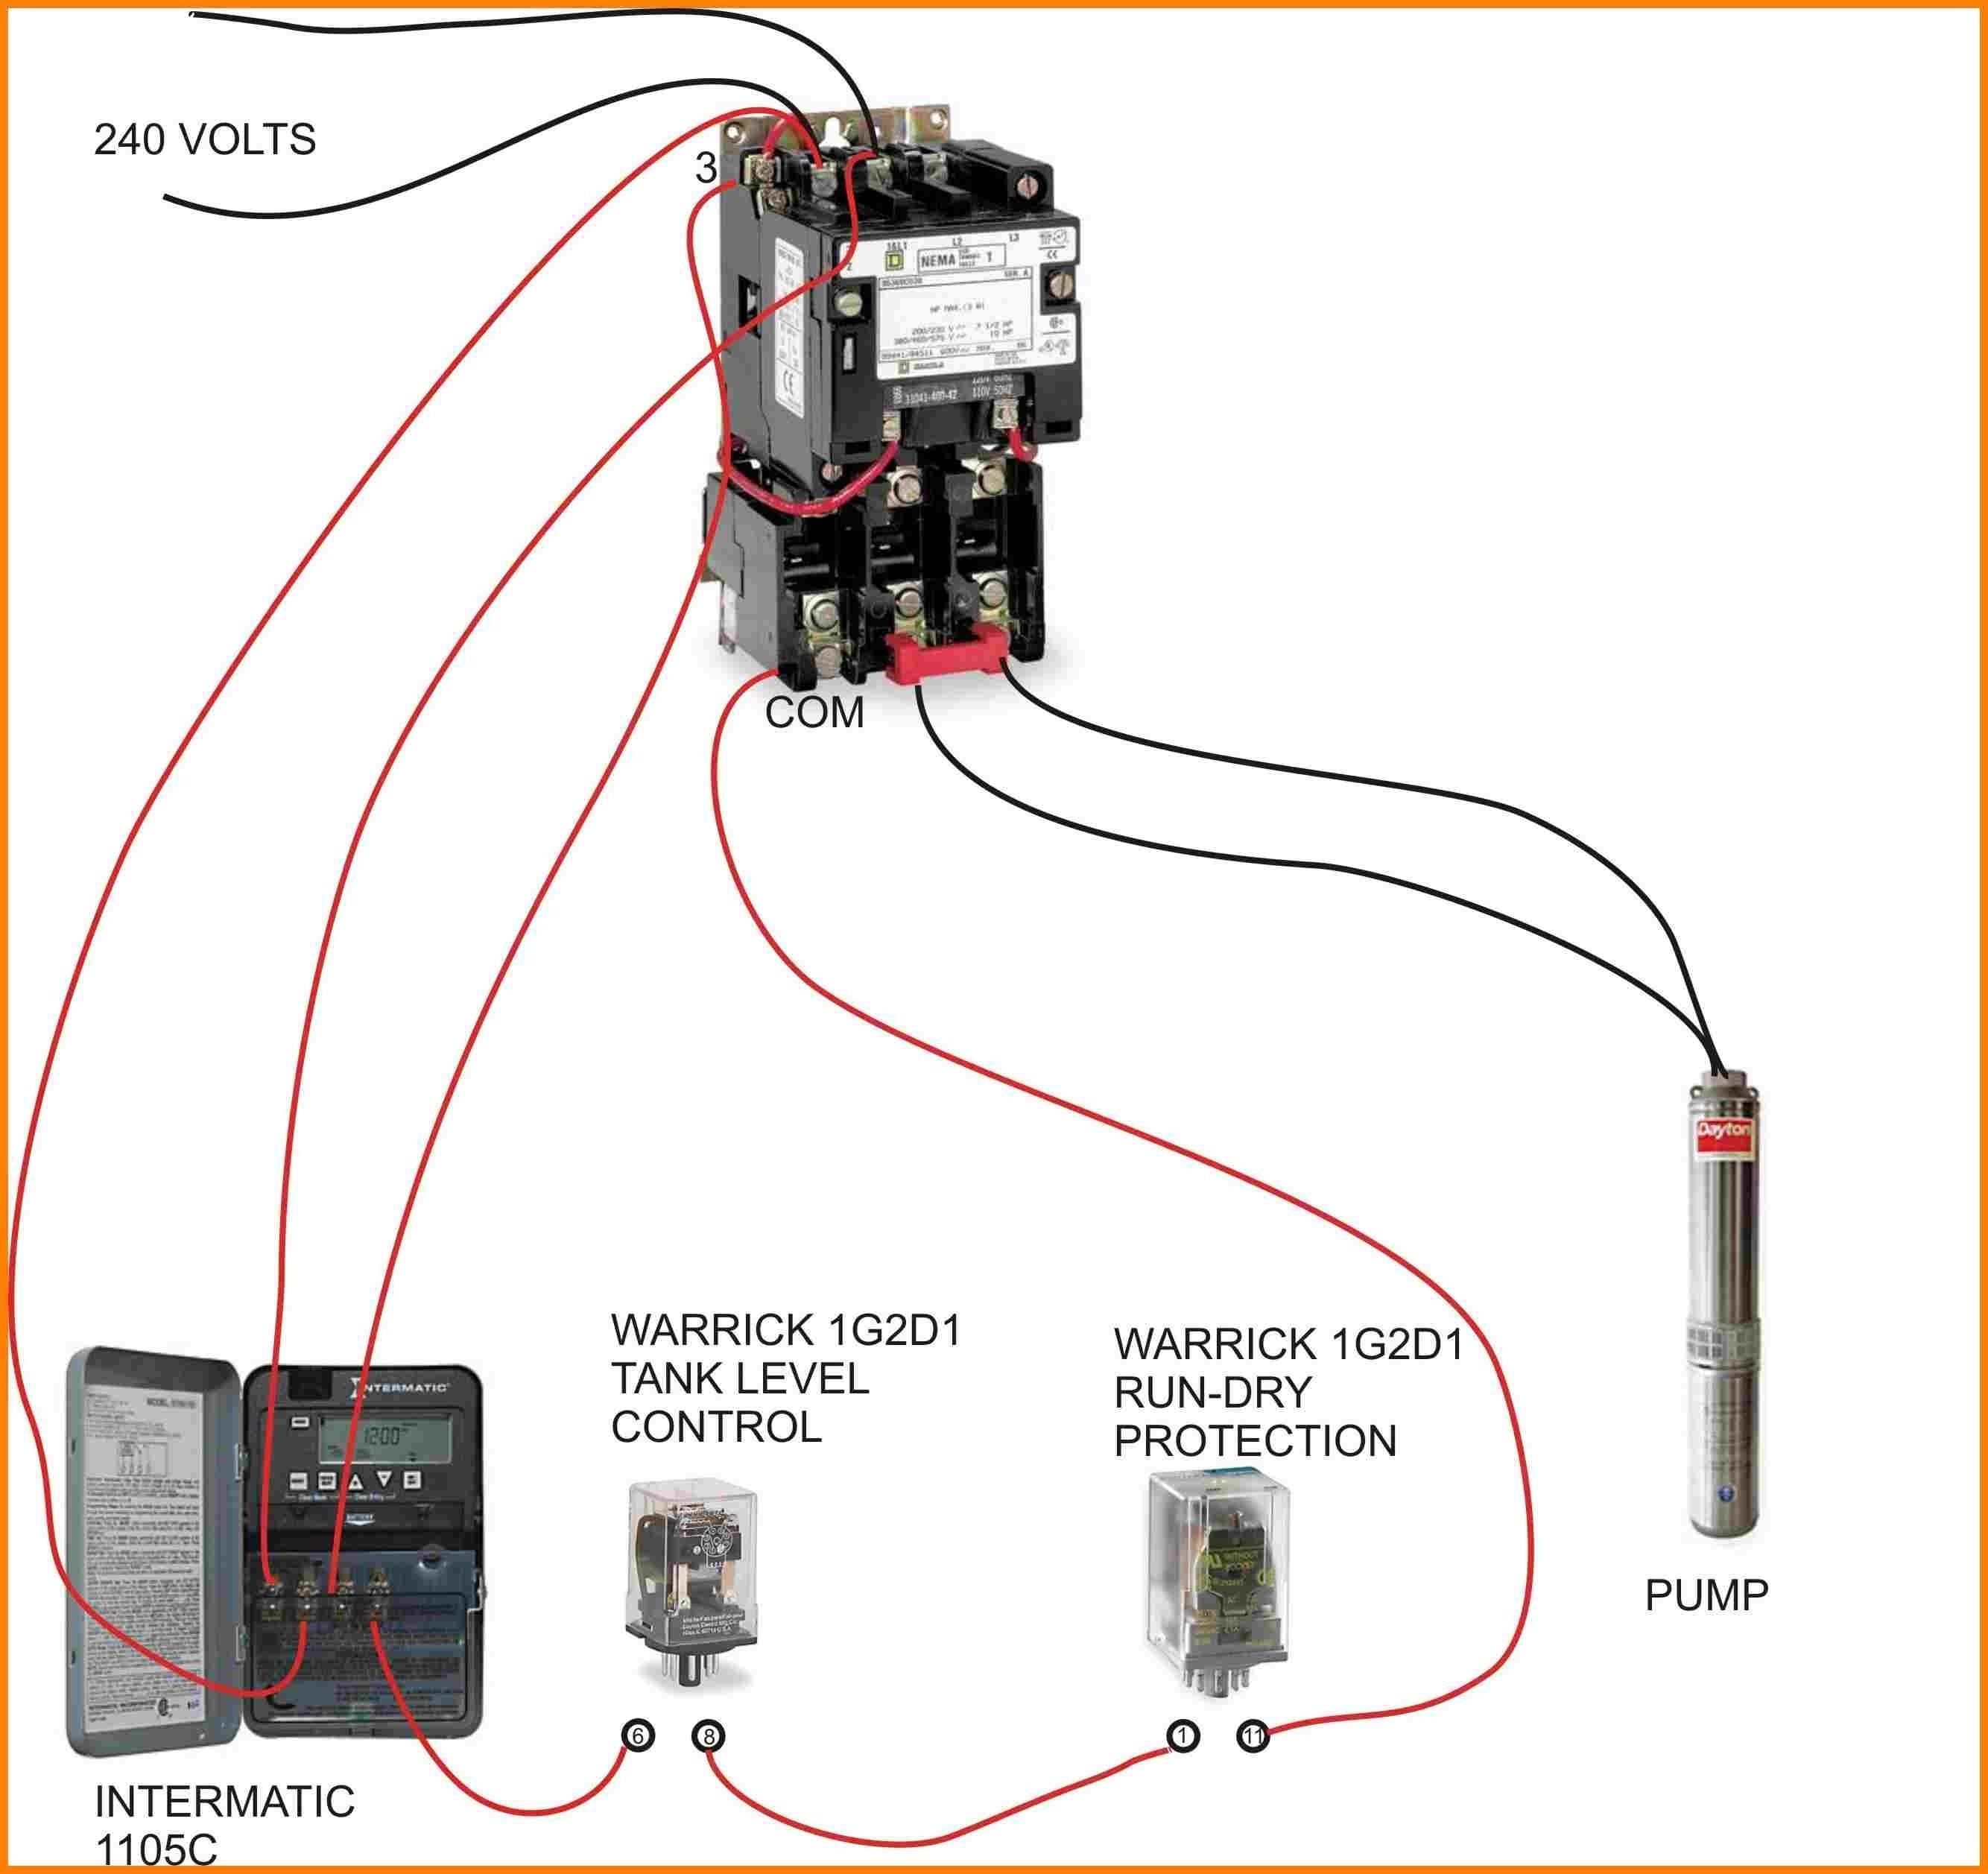 ac contactor wiring diagram Collection-Wiring Diagram For A 240 Volt Relay New Refrence Wiring Diagram For Ac Contactor 7-f